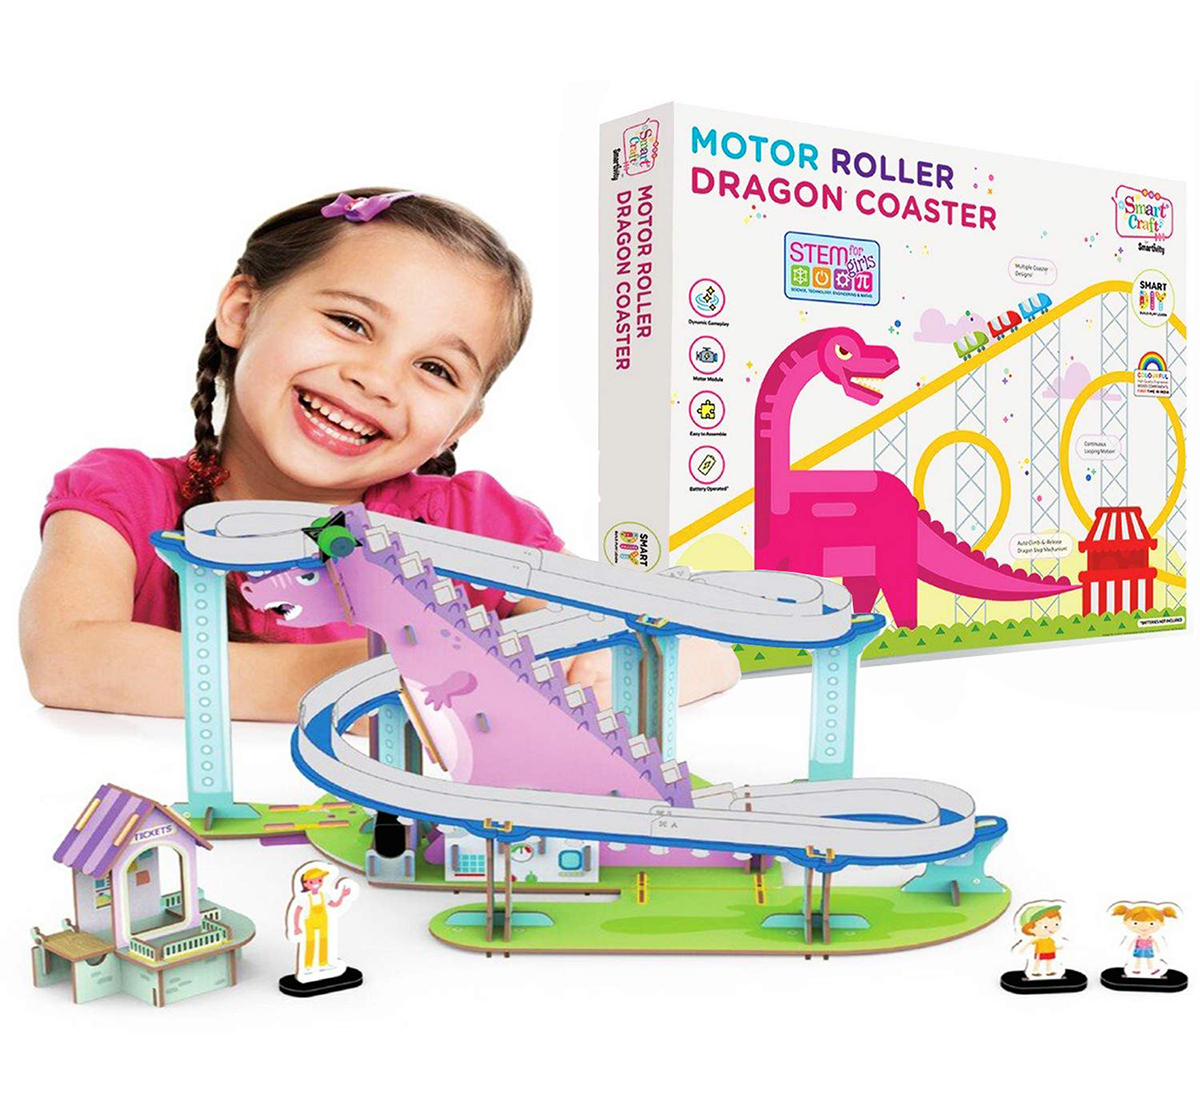 Smartivity | Smartivity Motor Roller Dragon Coaster: Stem, Diy, Educational, Learning, Building and Construction Toy for Kids age 6Y+